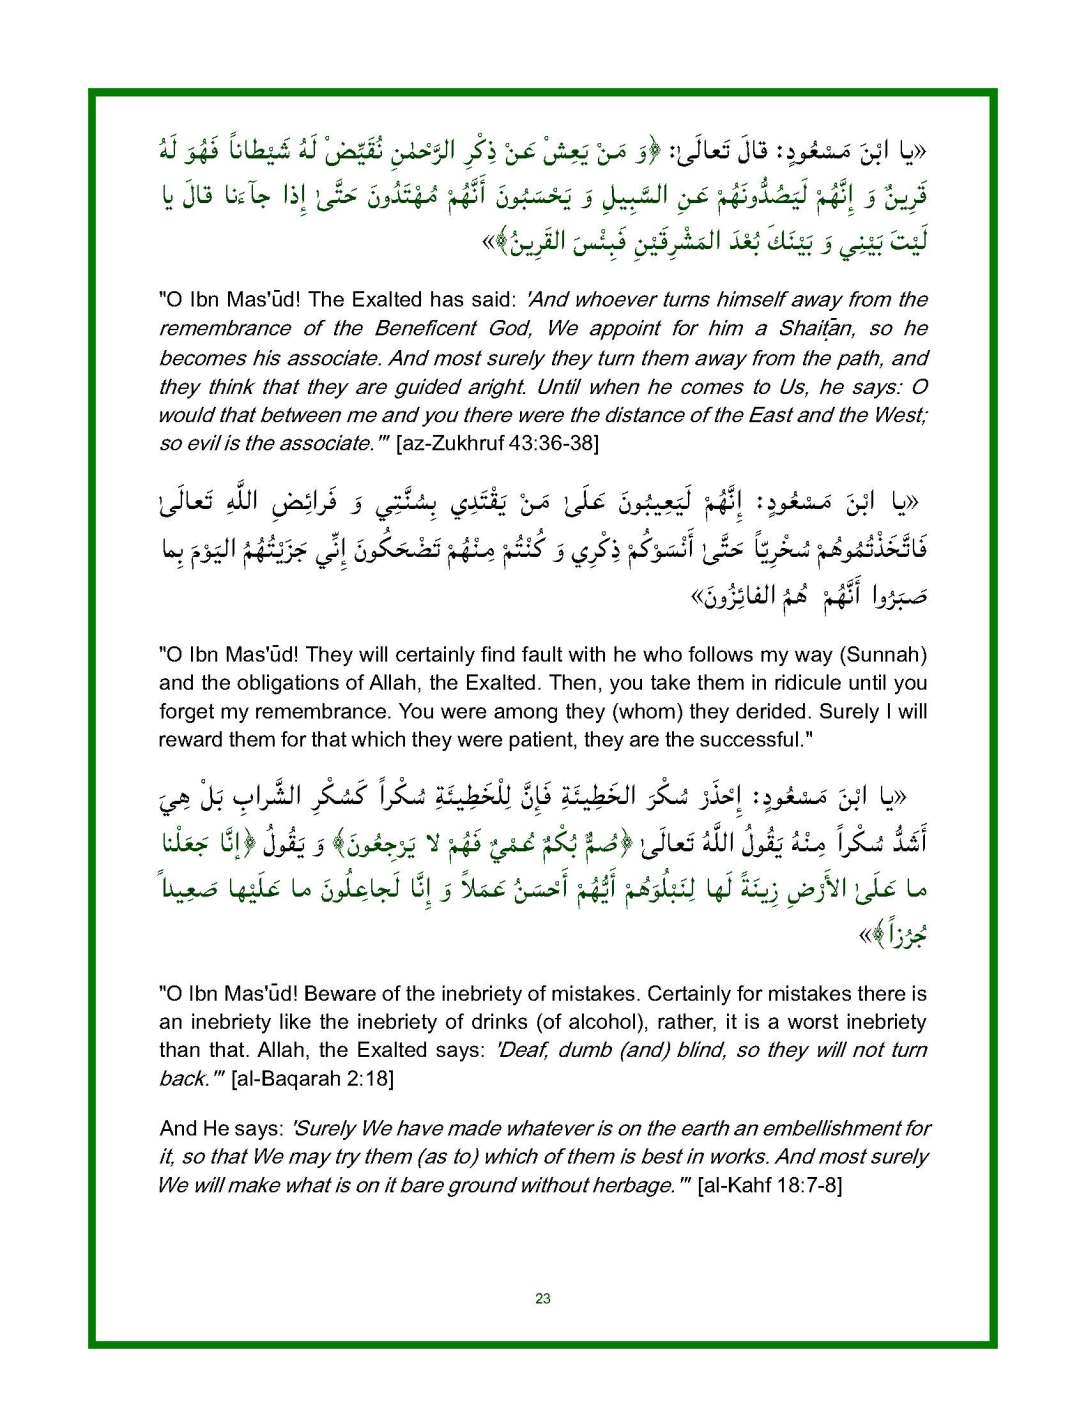 Spiritual-Advice-of-the-Messenger-of-Allah-for-Ibn-Masud-unlocked_Page_23